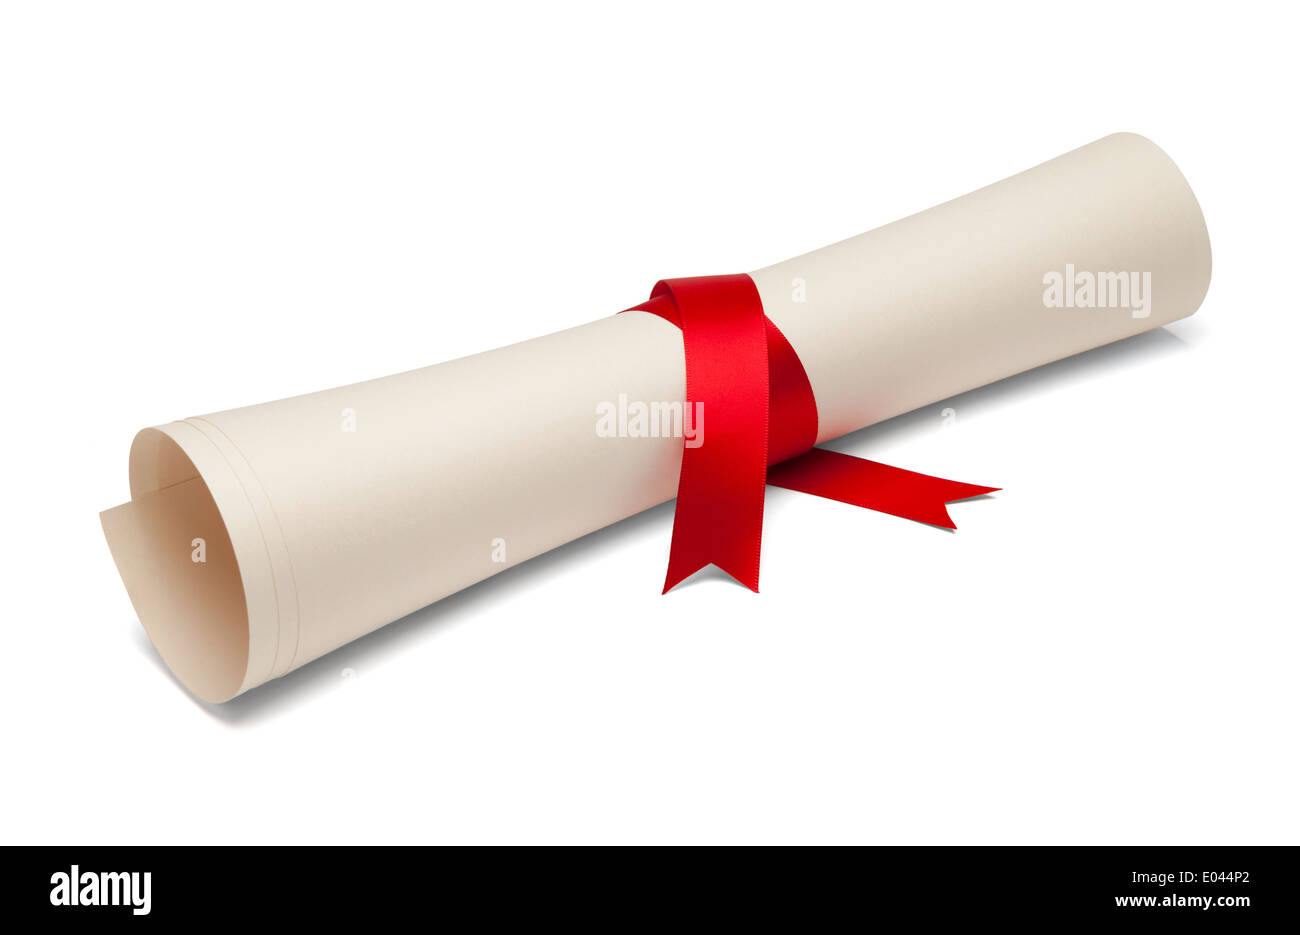 Diploma tied with red ribbon on a white isolated background. - Stock Image